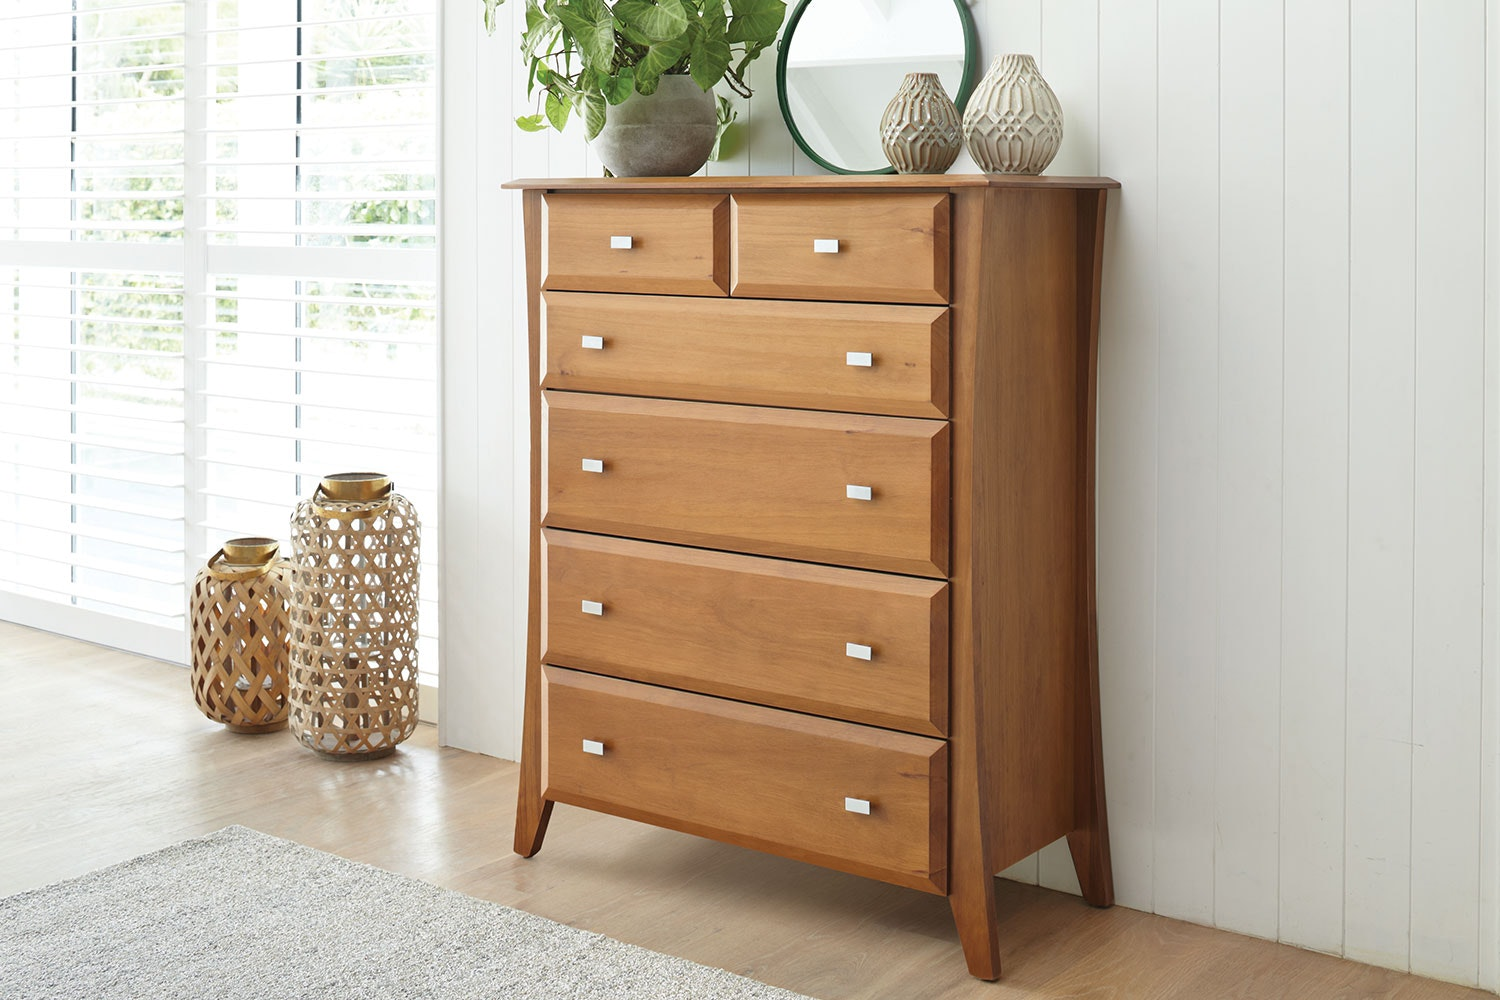 Lynbrook 6 Drawer Tallboy by Coastwood Furniture